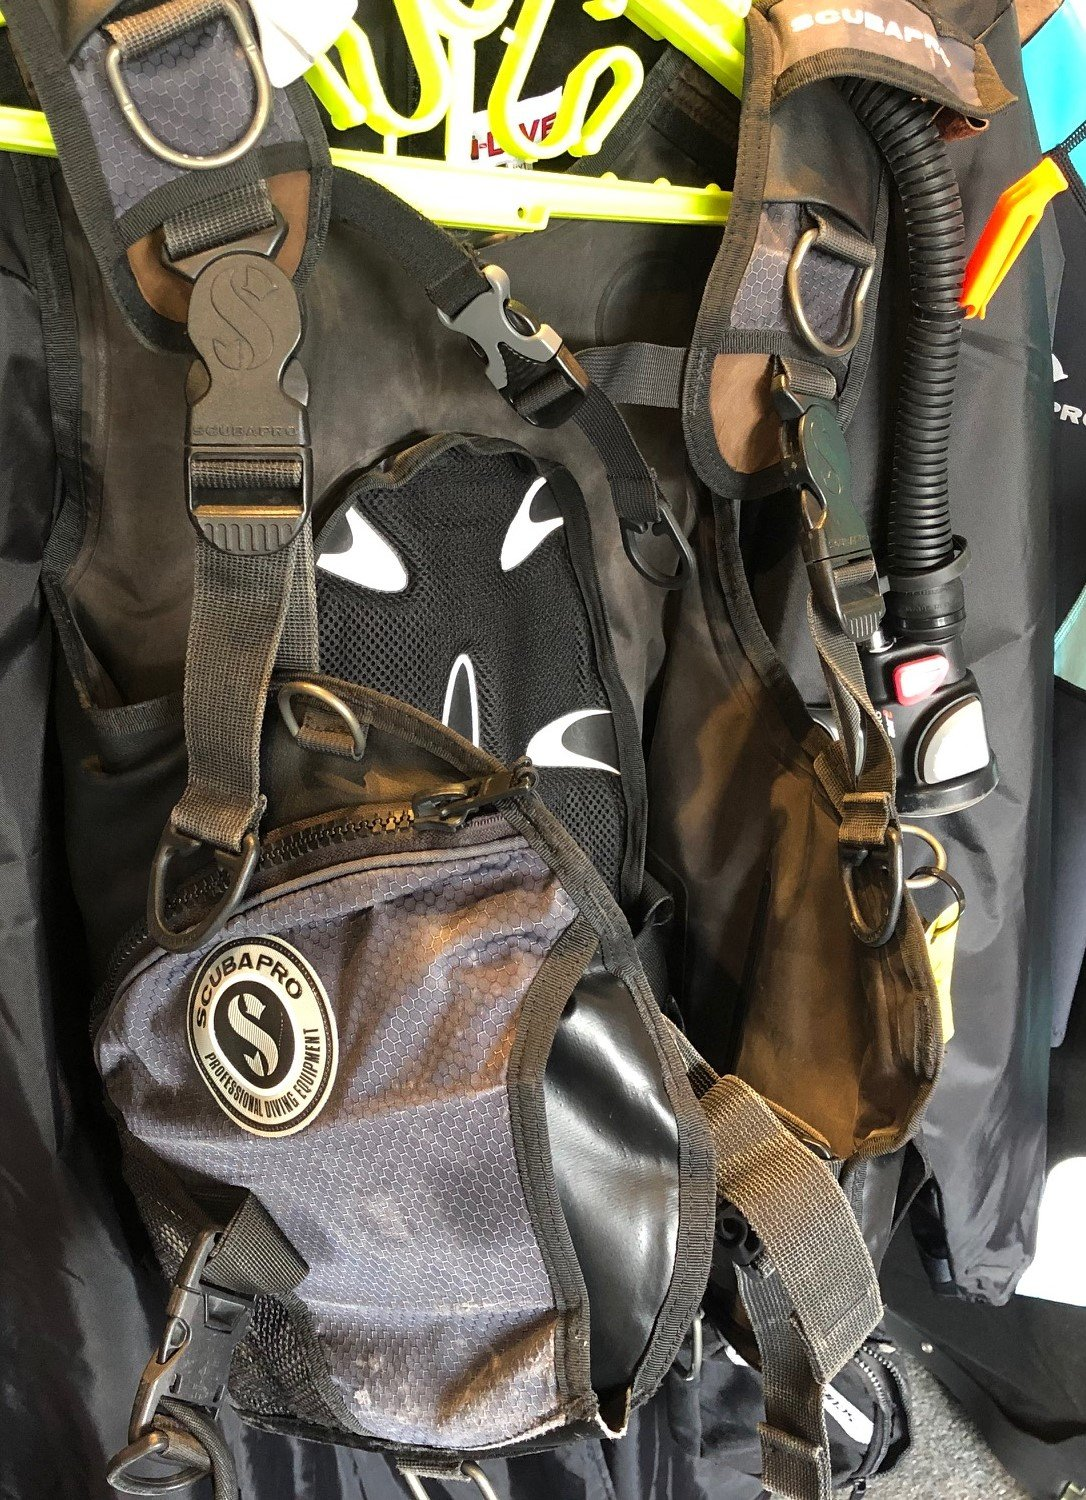 Used GO BCD w/Air 2, S (V33)